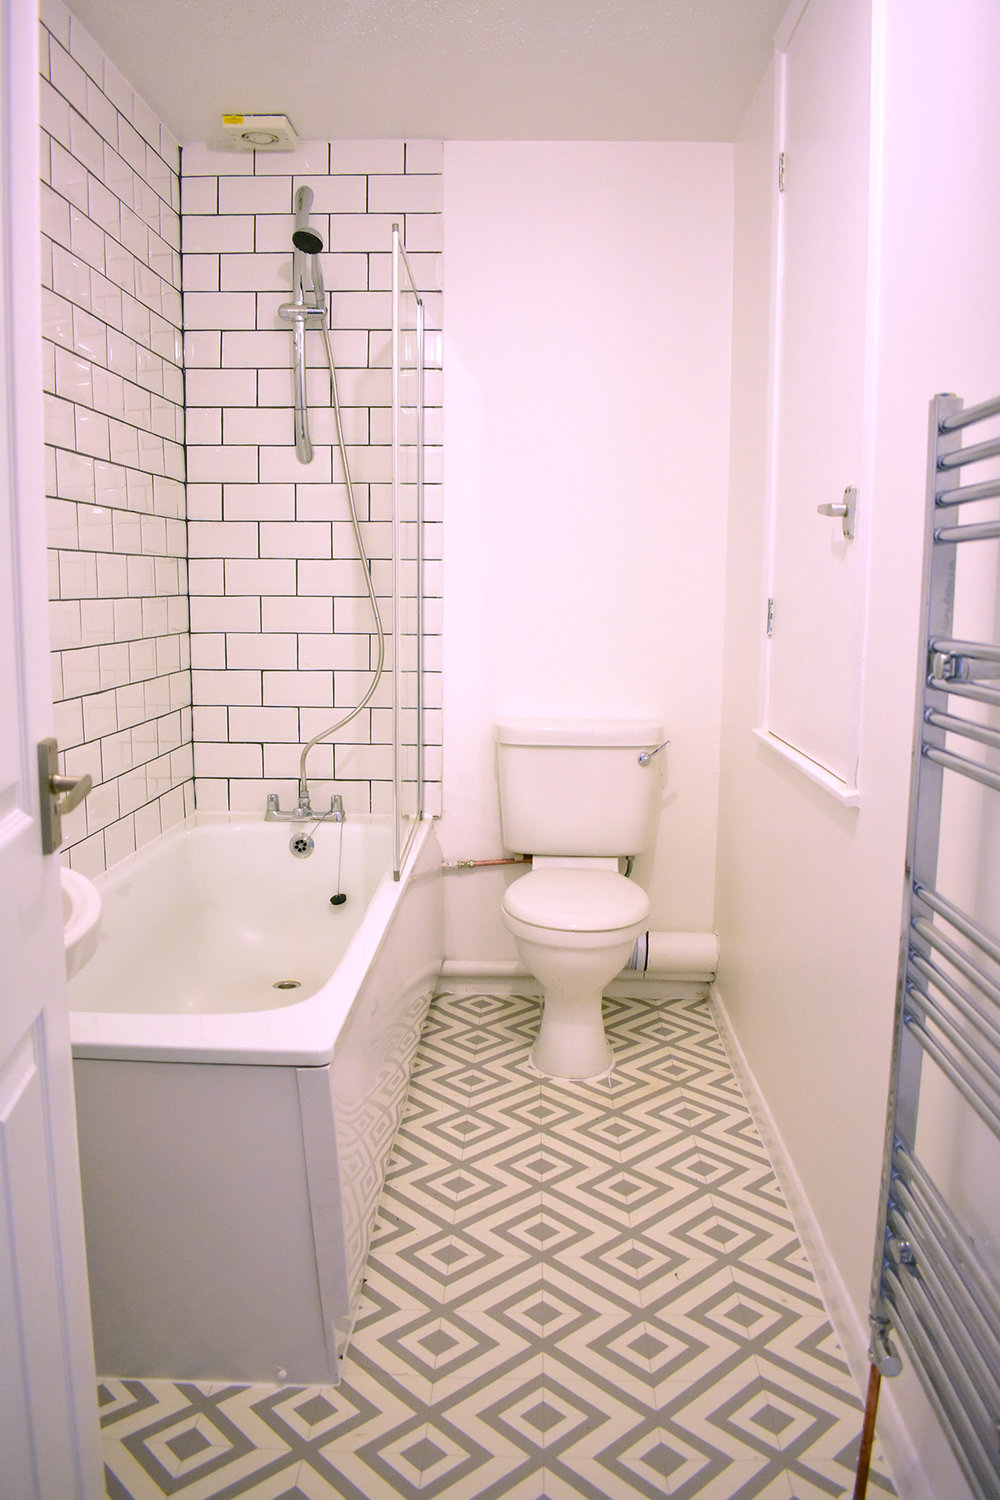 New tiles, vinyl flooring, and white paint made a world of difference in the bathroom